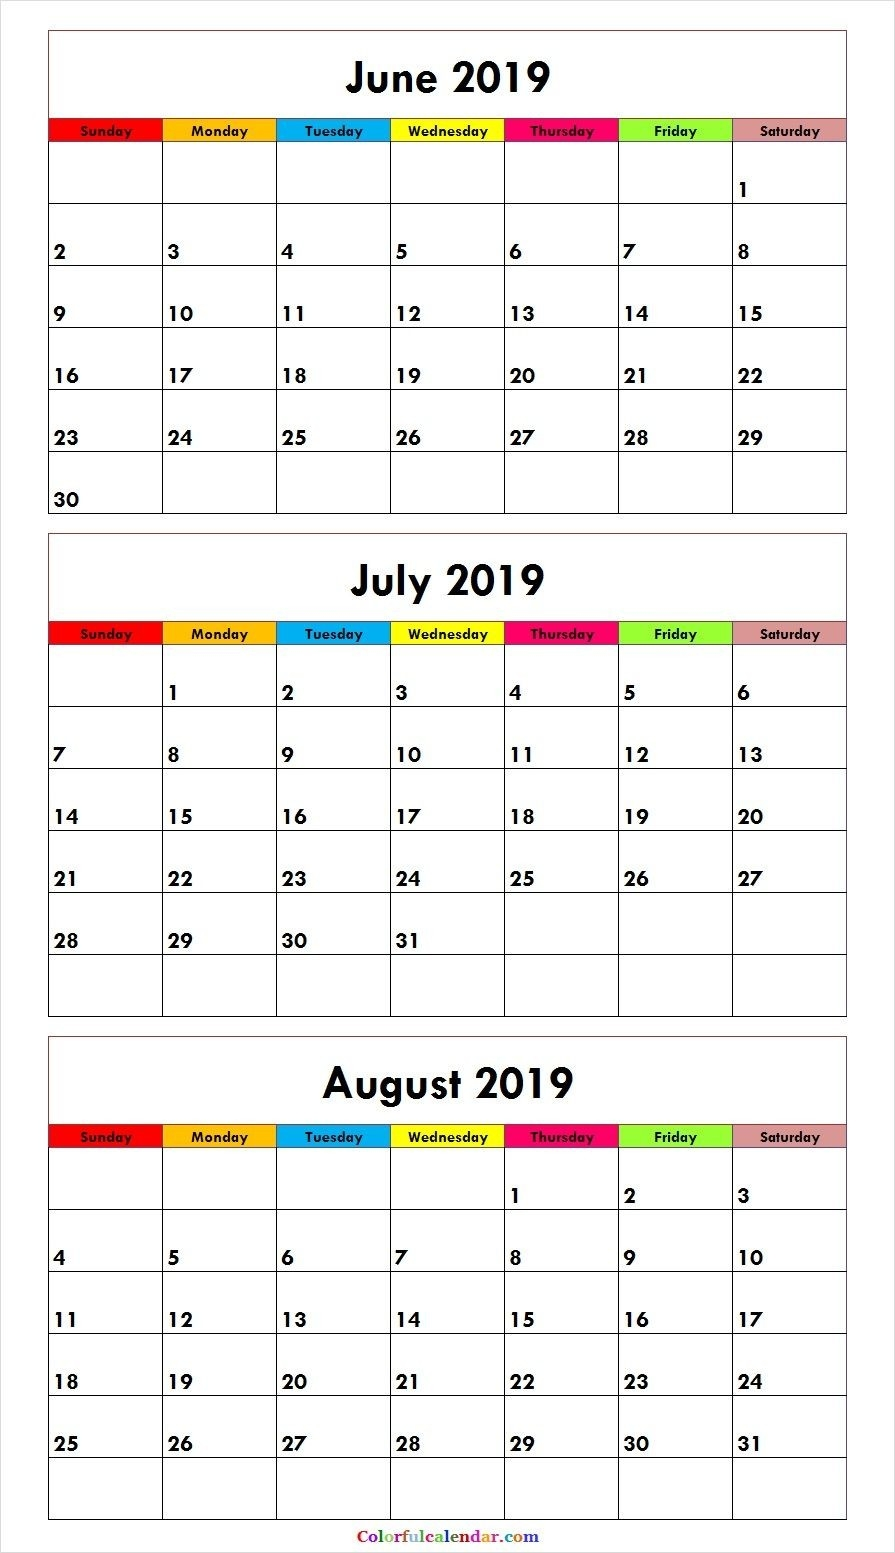 Free June July August 2019 Calendar (3 Months) Printable-Blank Calendar June July August Combination Printable